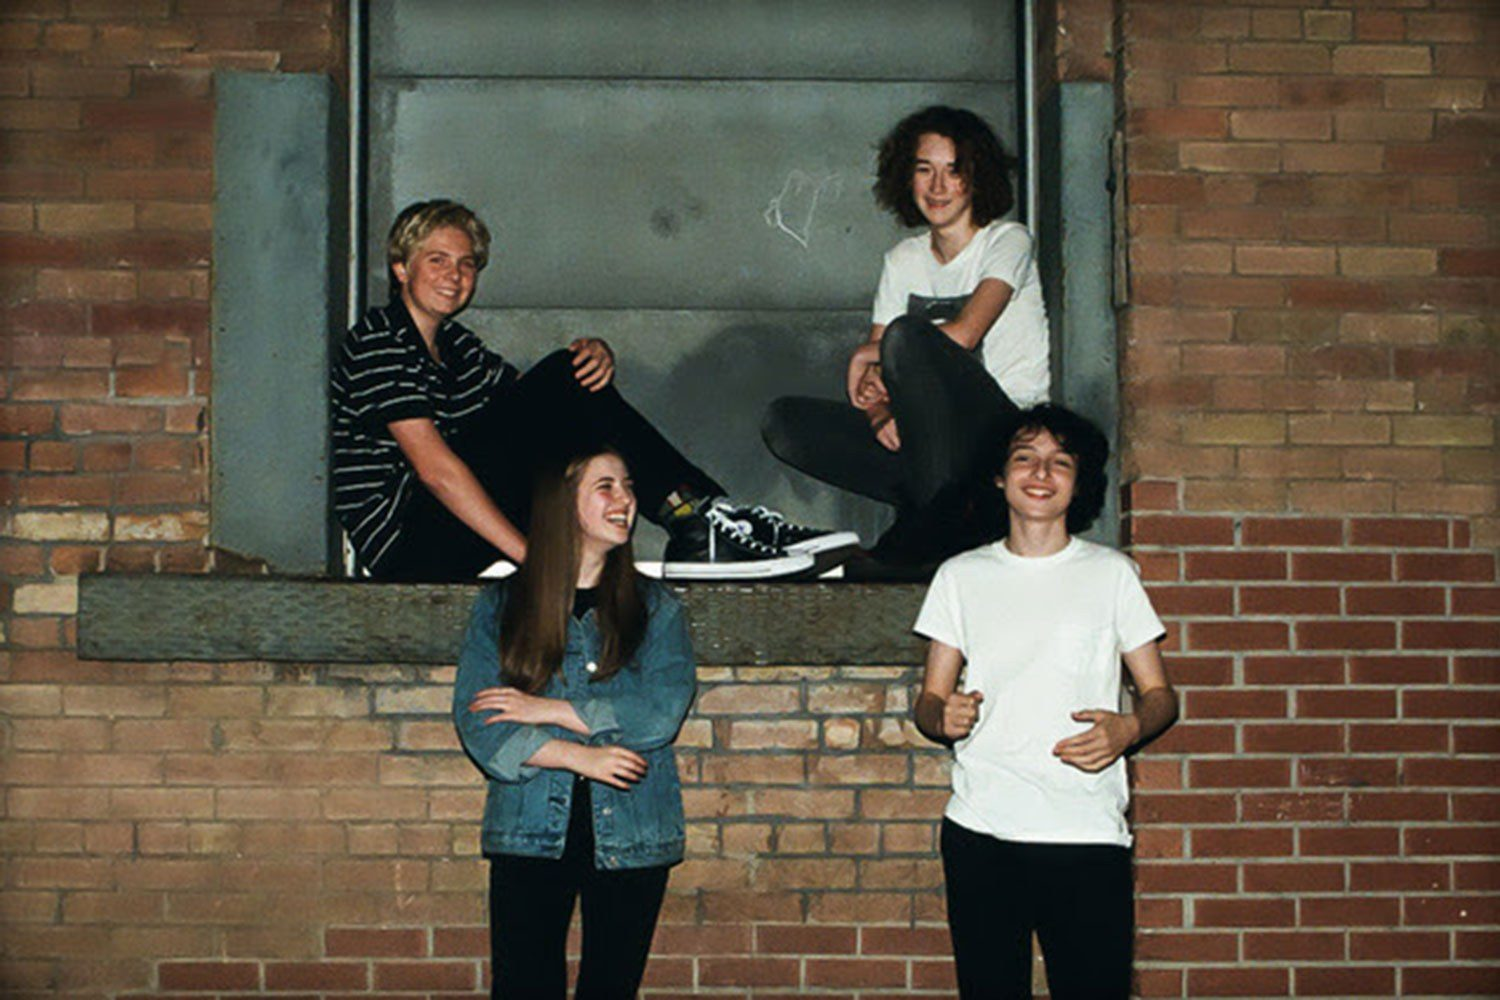 Calpurnia have released a new video and track, 'Cell'